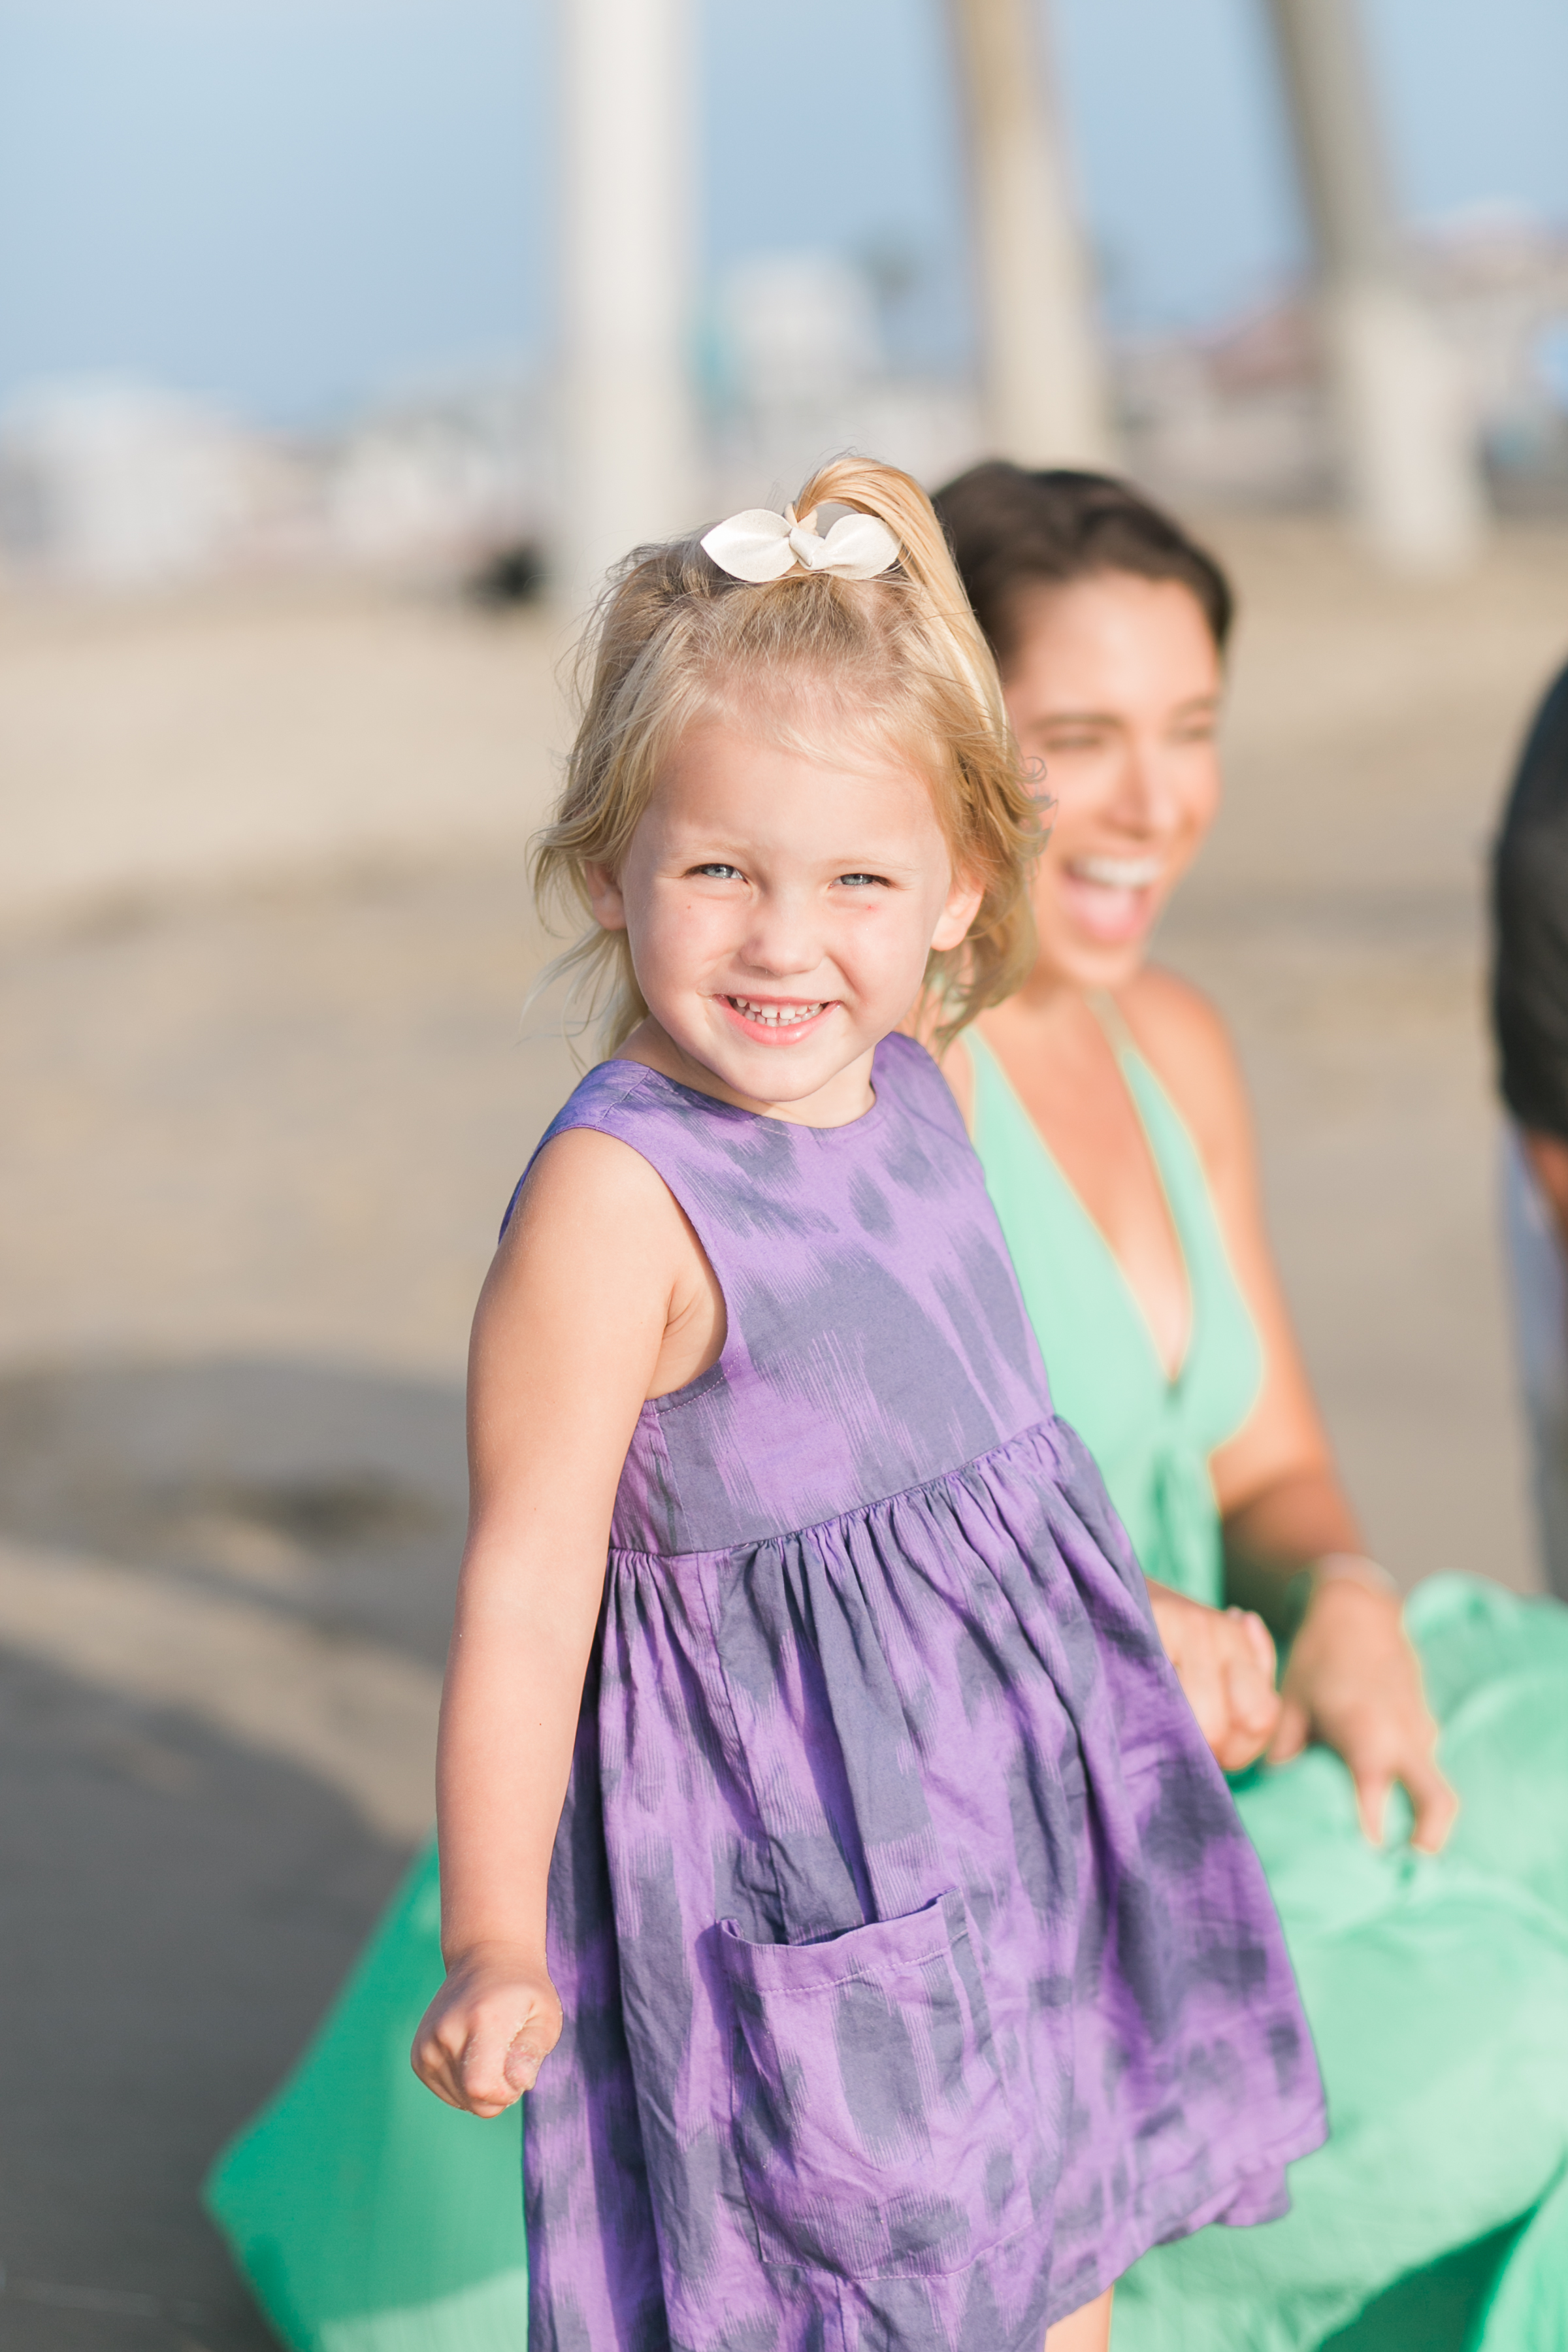 Manhattan_Beach_Children_Family_Portraits_007.jpg